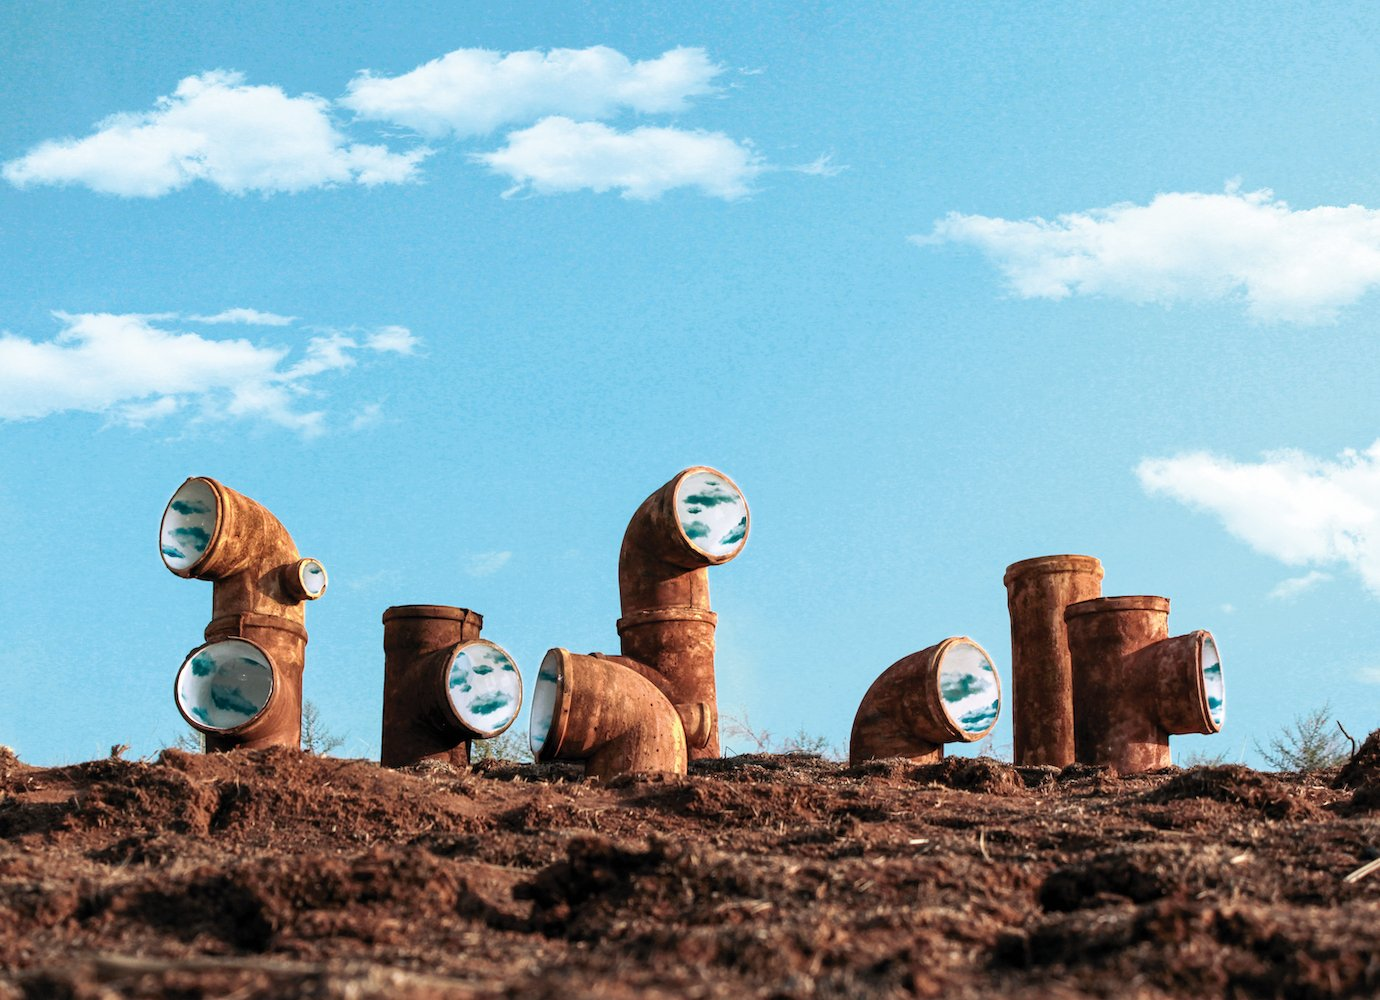 Sunny skies in sewer pipes: visit the Yerevan sculpture imagining a brighter future